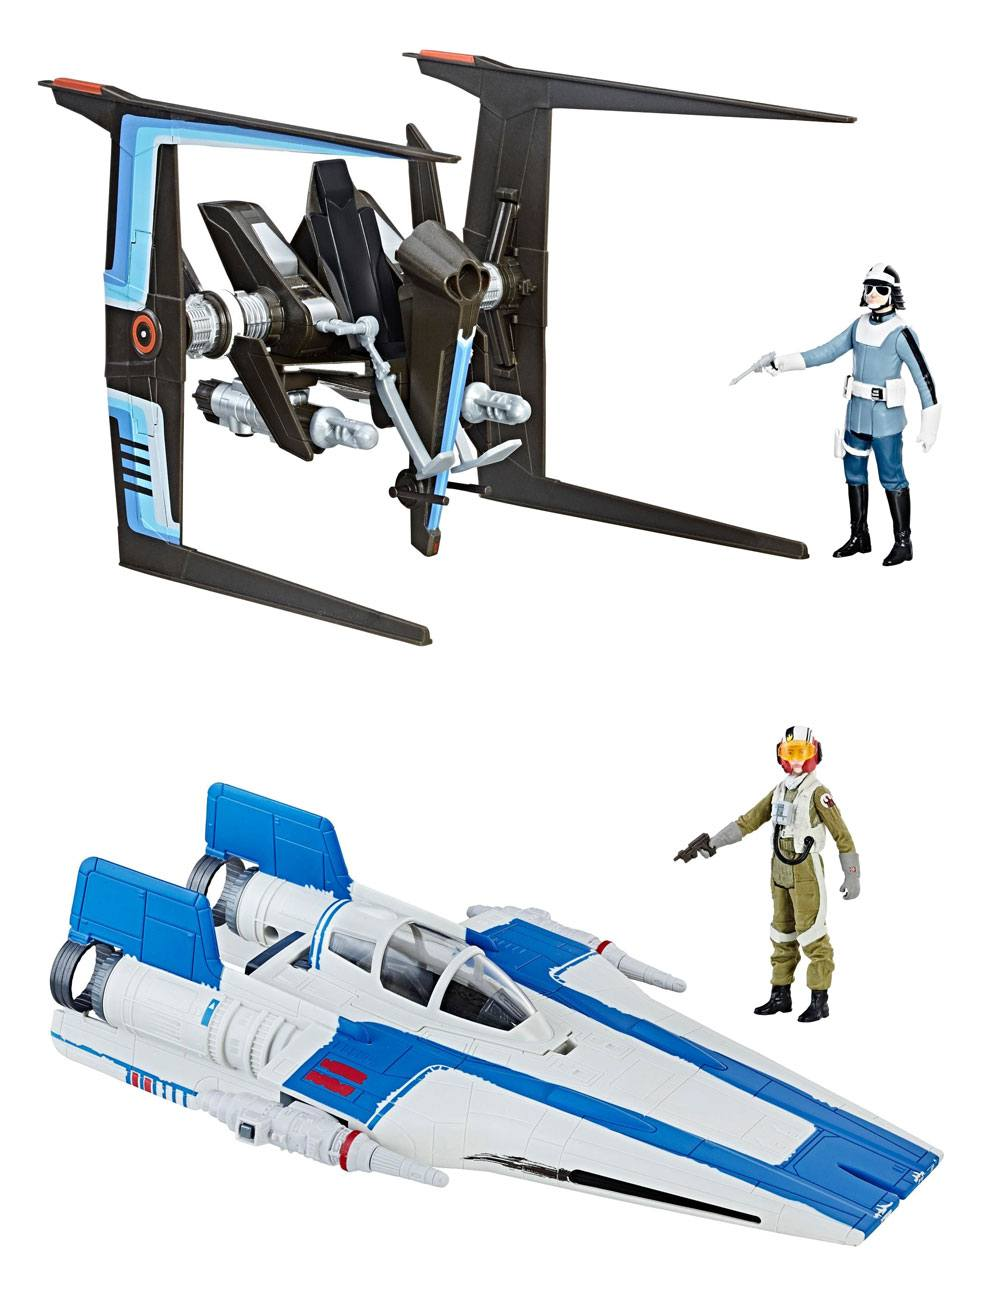 Star Wars Episode VIII Force Link Class B Vehicles with Figures 2017 Wave 1 Assortment (3) --- DAMAGED PACKAGING